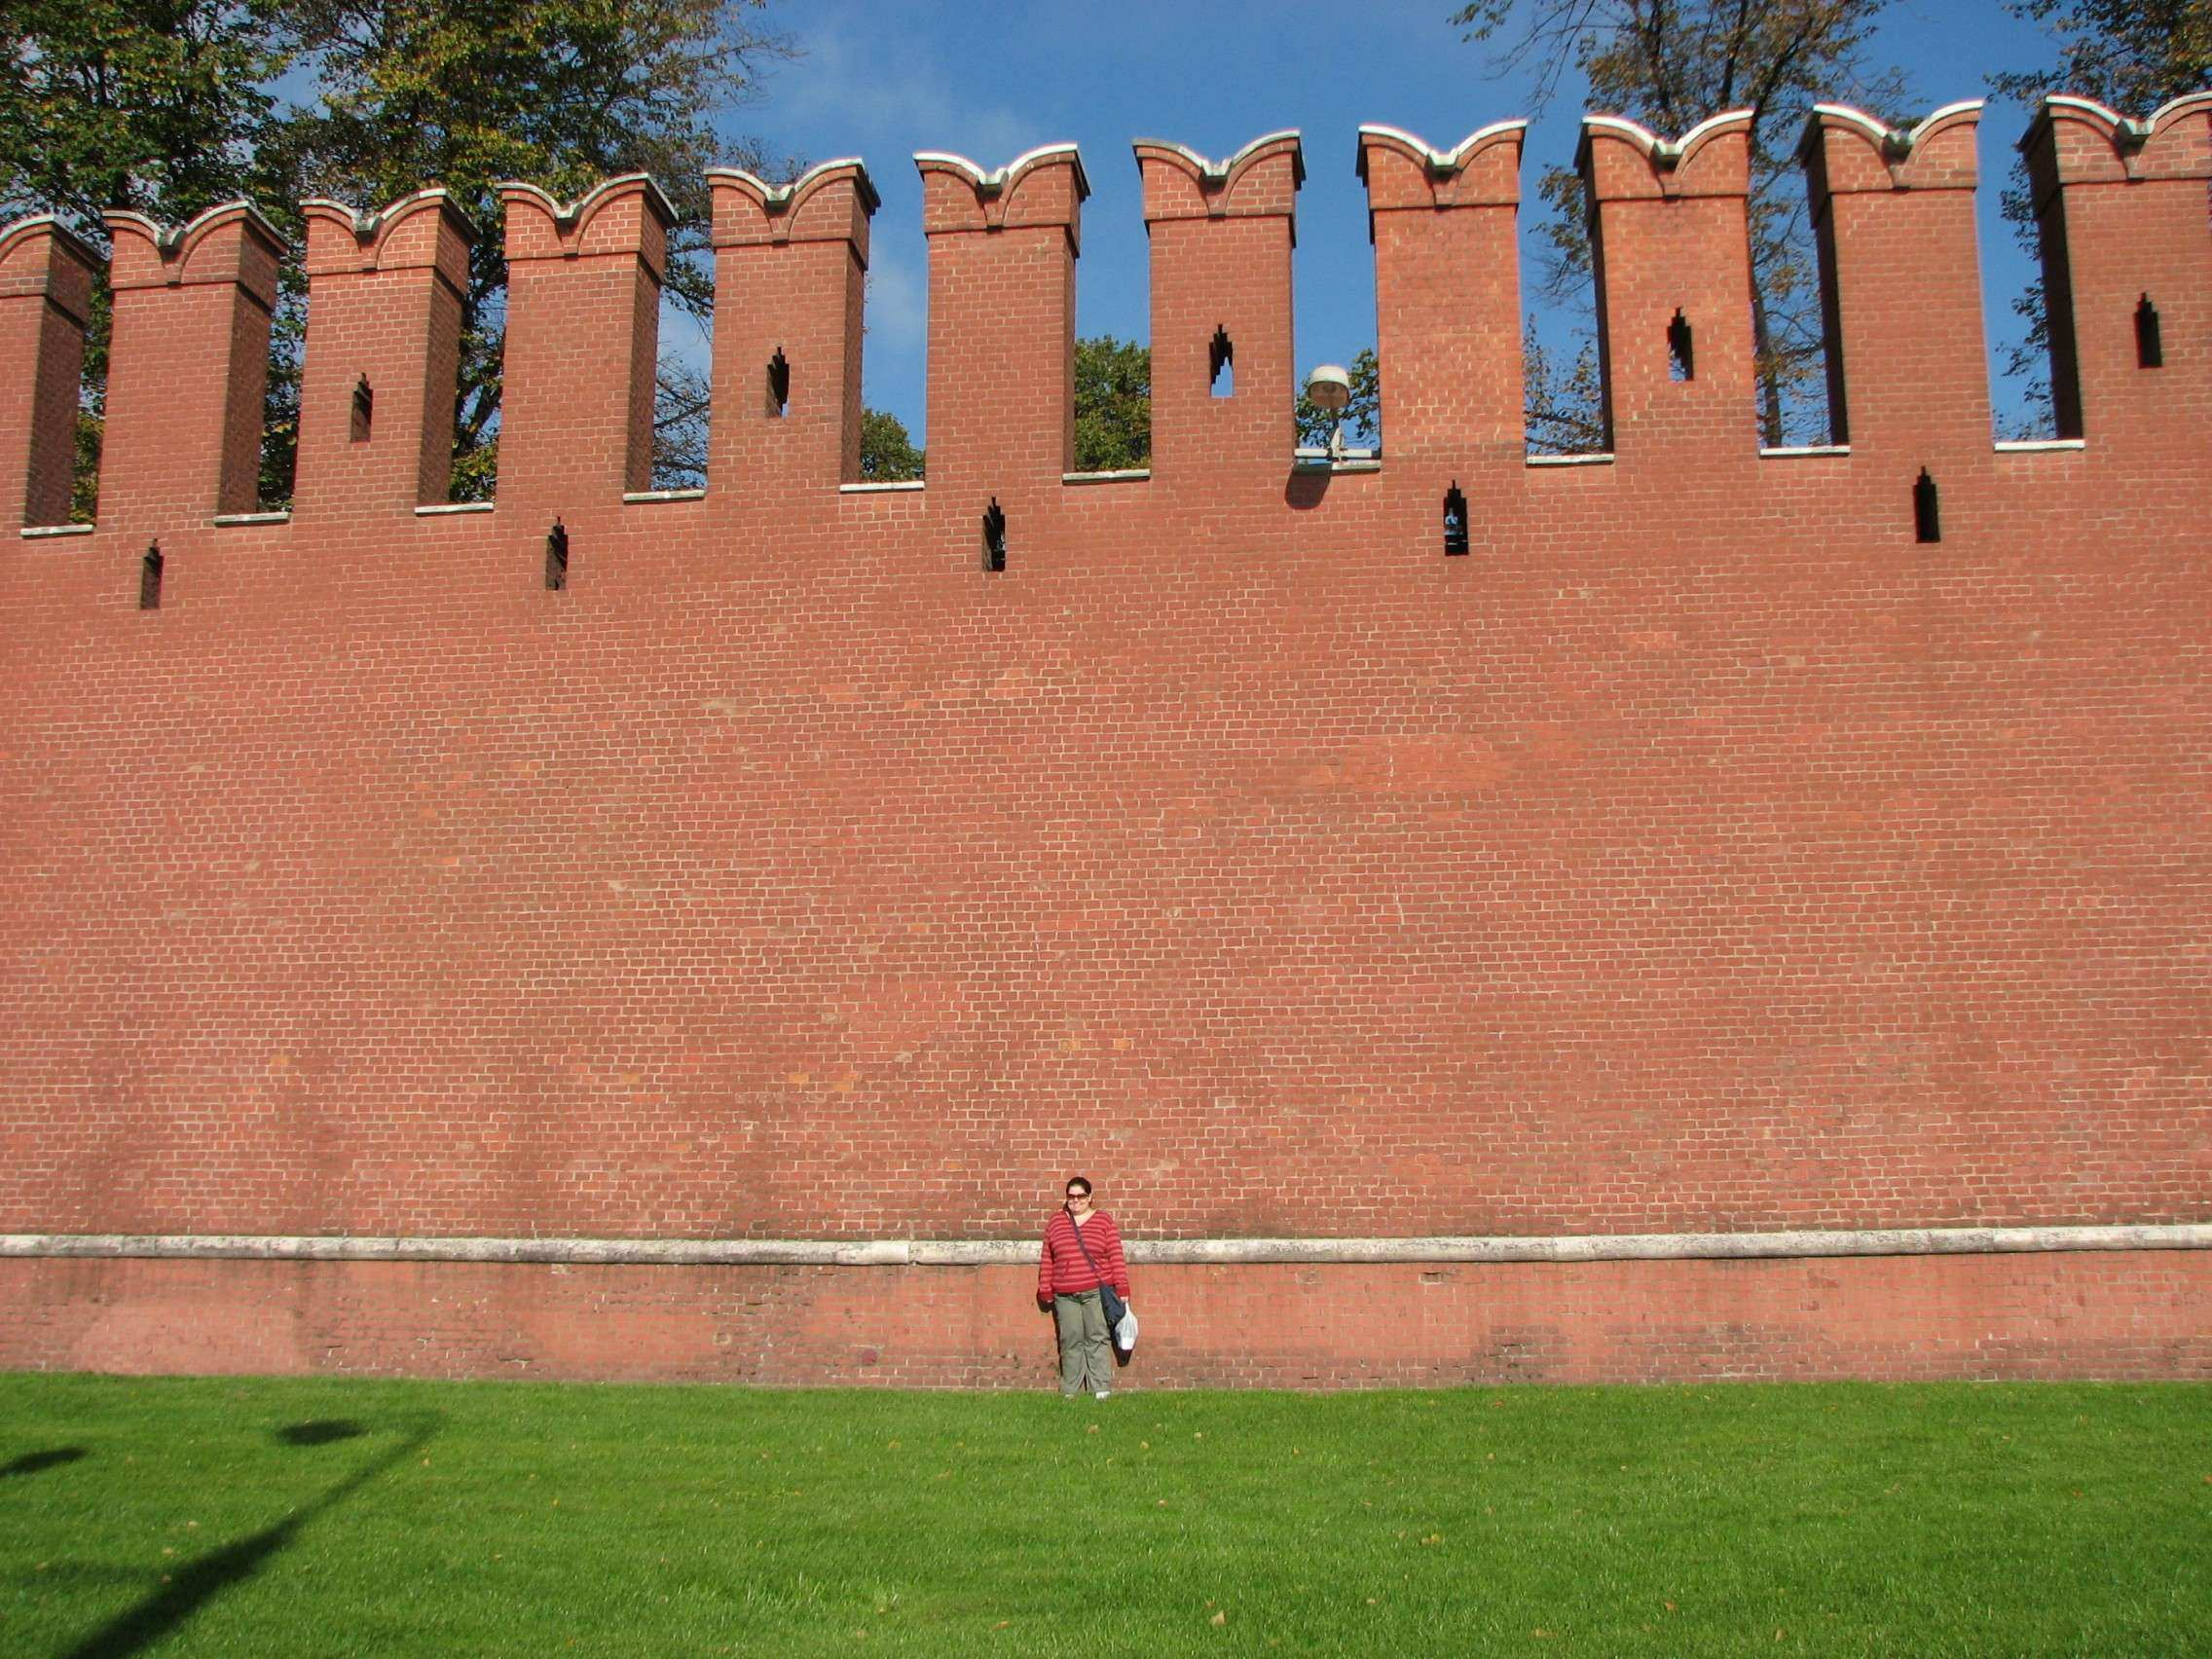 Related Keywords & Suggestions for kremlin wall